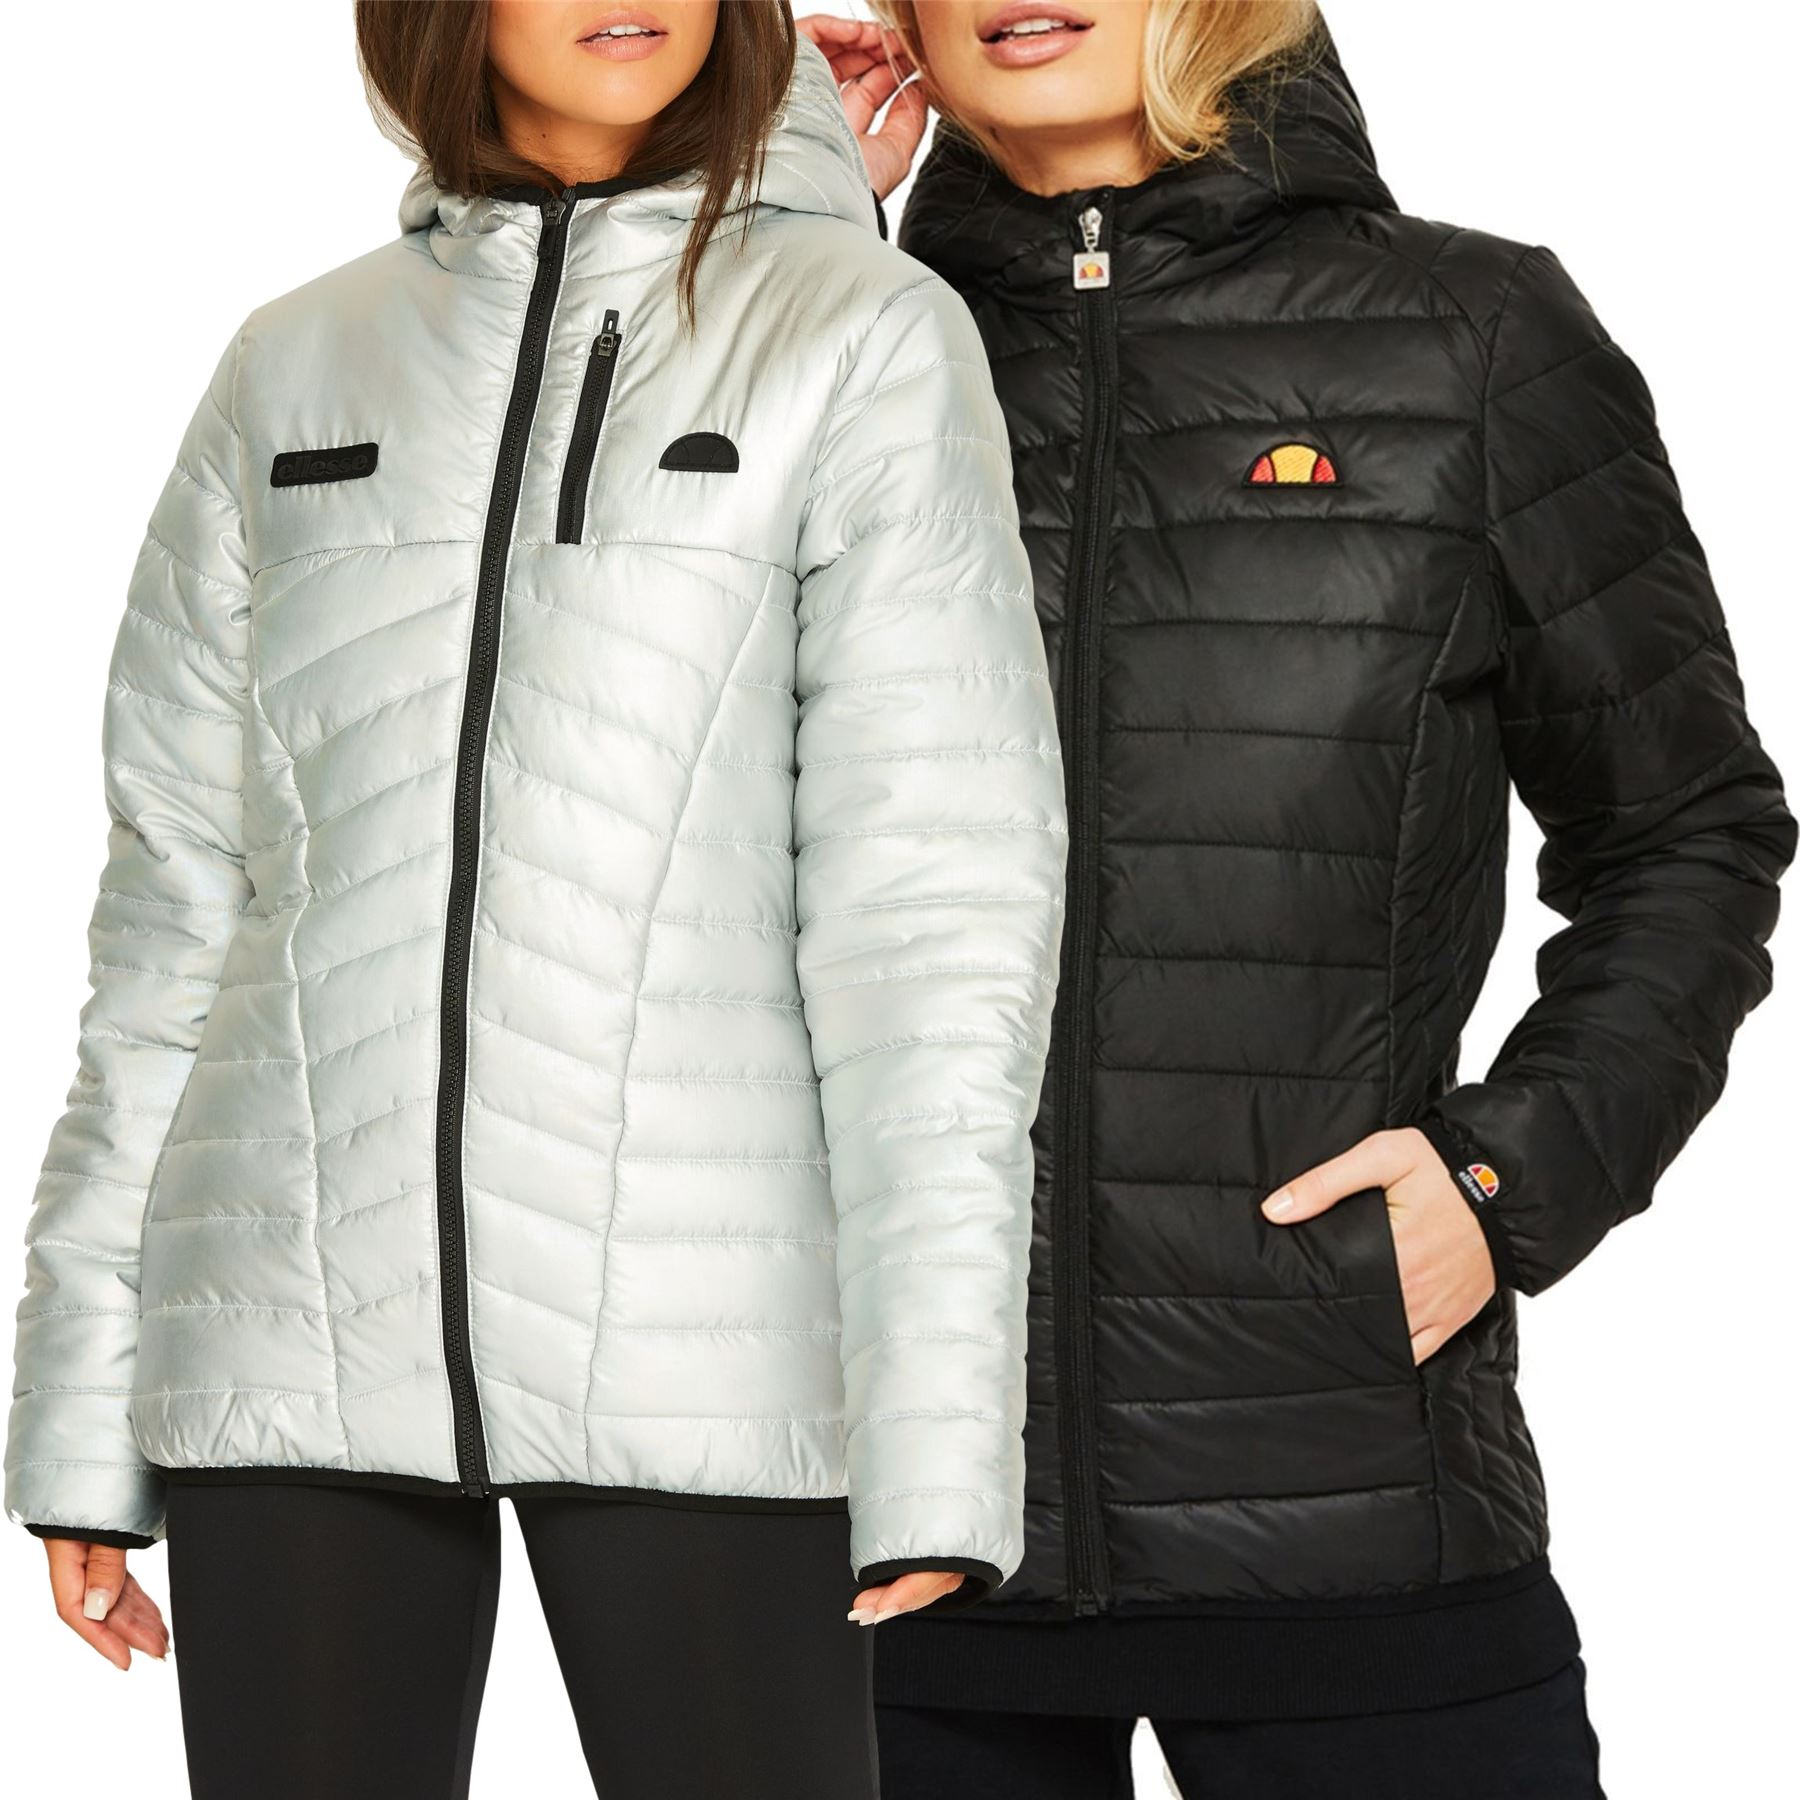 e904edad Details about Ellesse Jackets & Coats Women's Assorted Styles